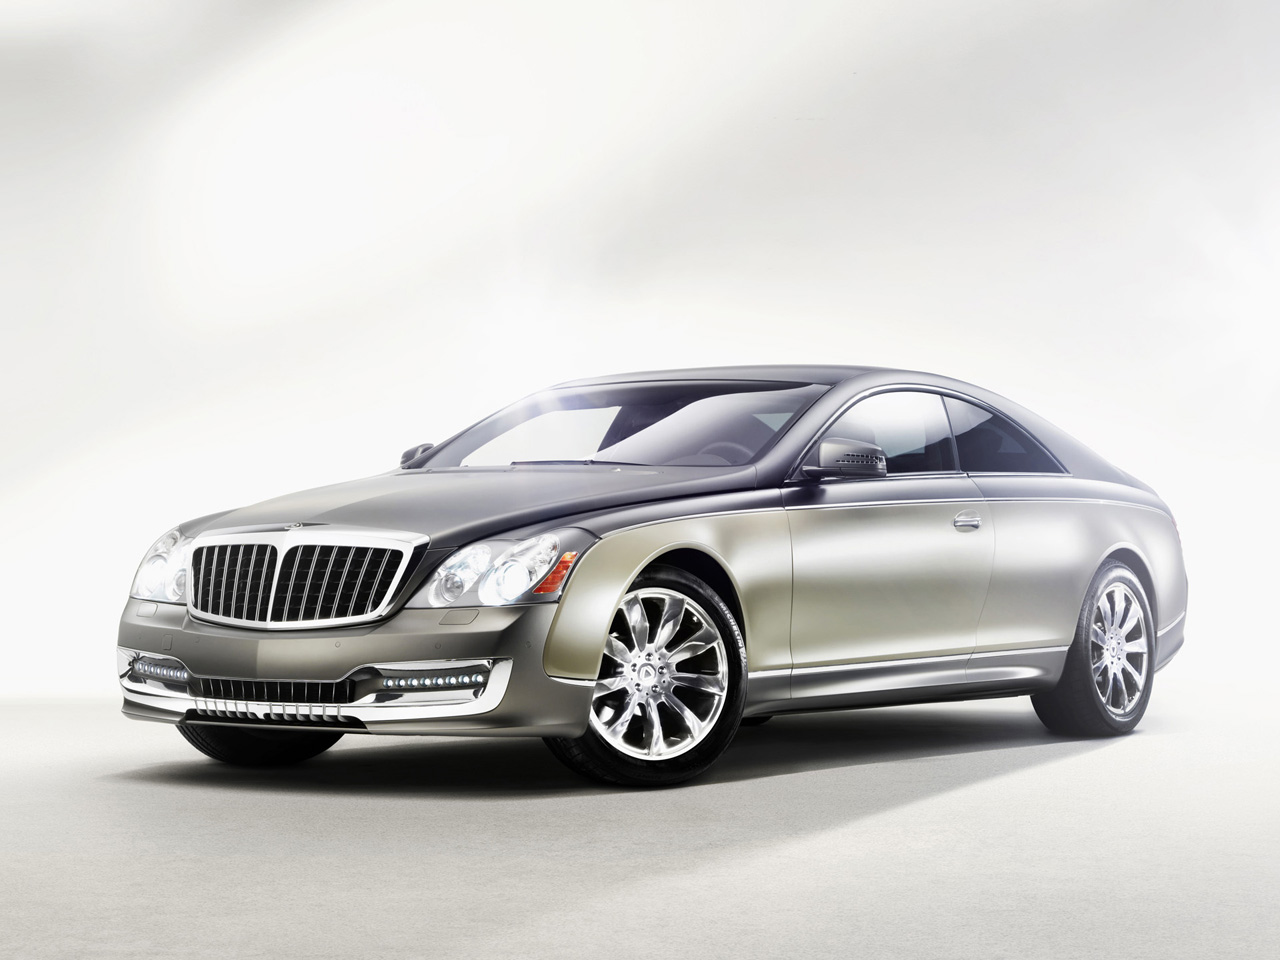 Dcgoldca 2011 Xenatec Maybach 57 S Coupe